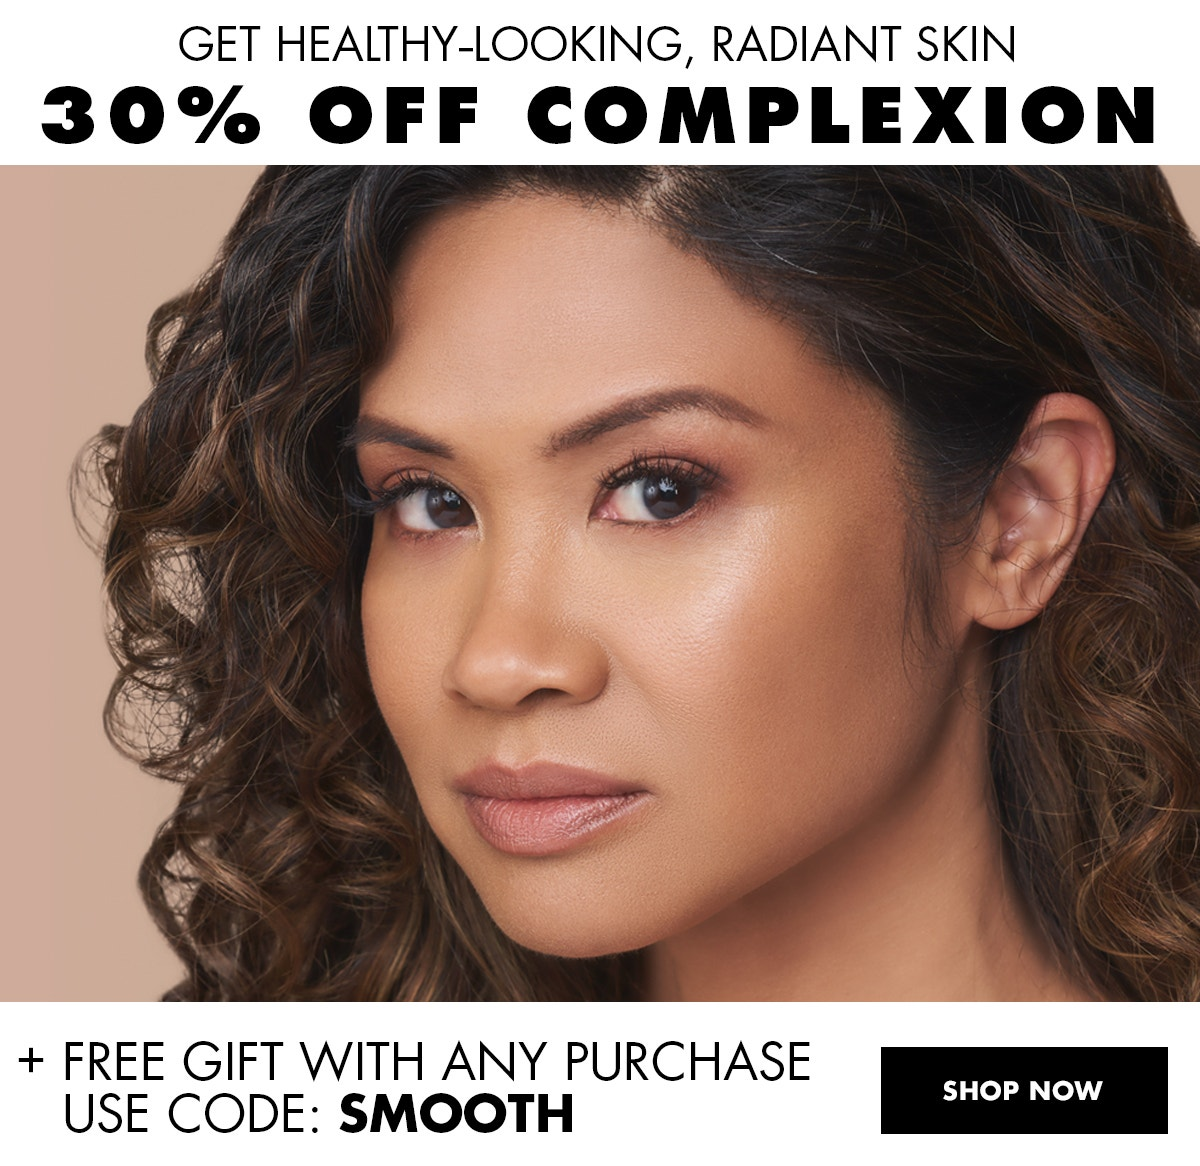 LORAC | Enjoy 305 off complexion with code: SMOOTH | SHOP NOW